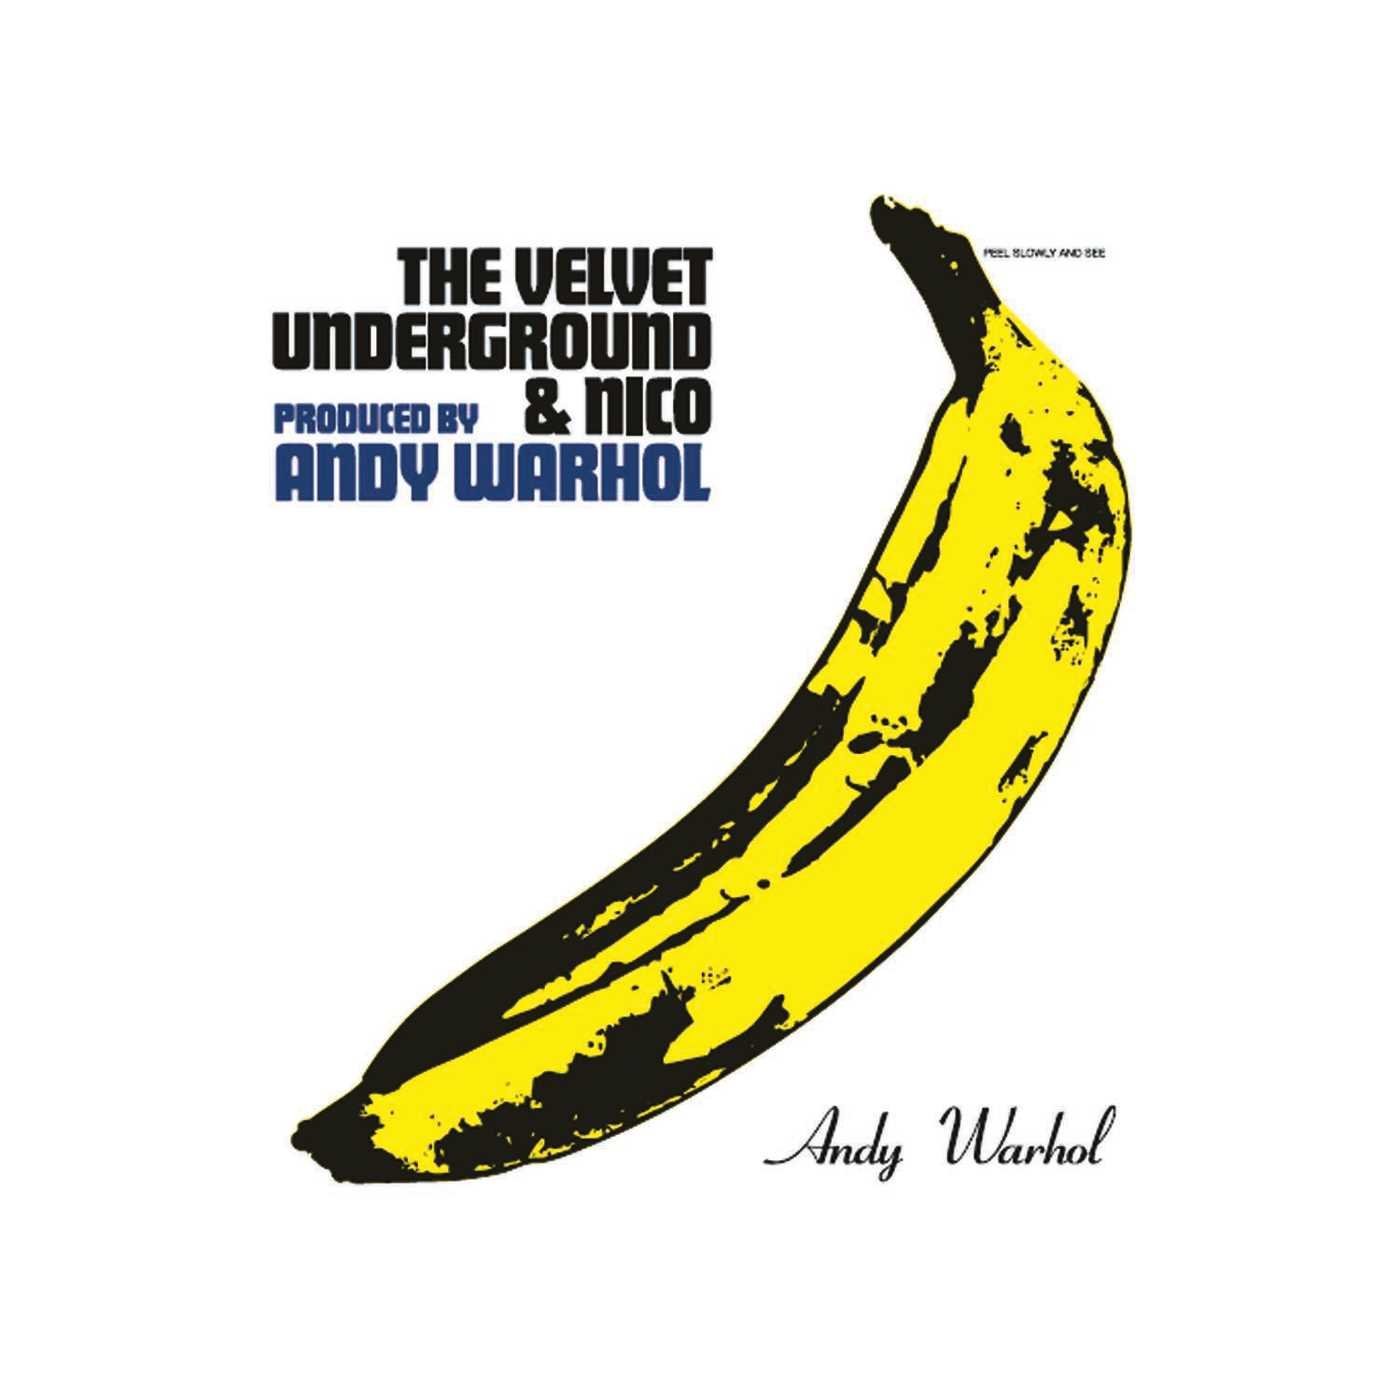 Velvet Underground Velvet Underground Nico Limited Edition Peelable Banana Cover Art Music